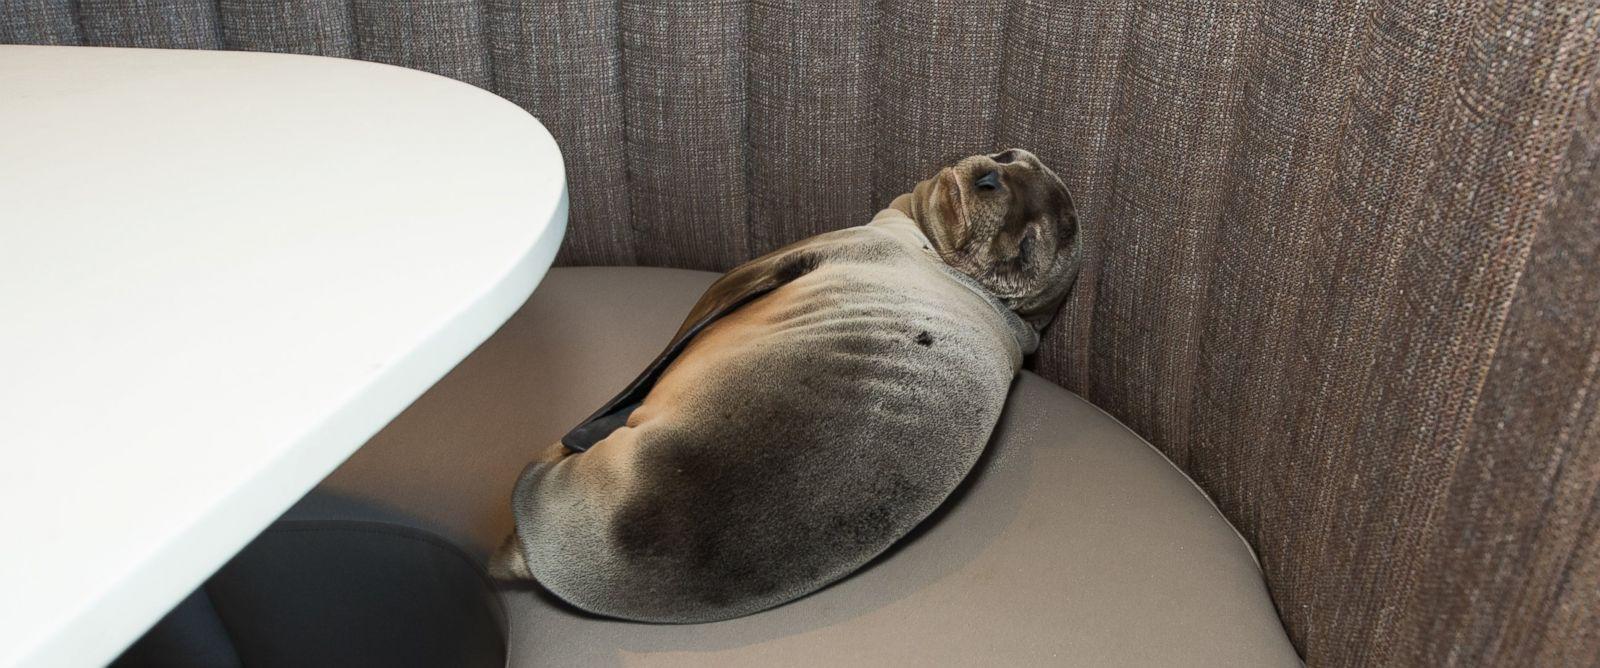 PHOTO: An 8-month-old female California sea lion pup was found sleeping in a booth in the dining room of the iconic Marine Room restaurant in La Jolla, California on Thursday, February 4, 2016.